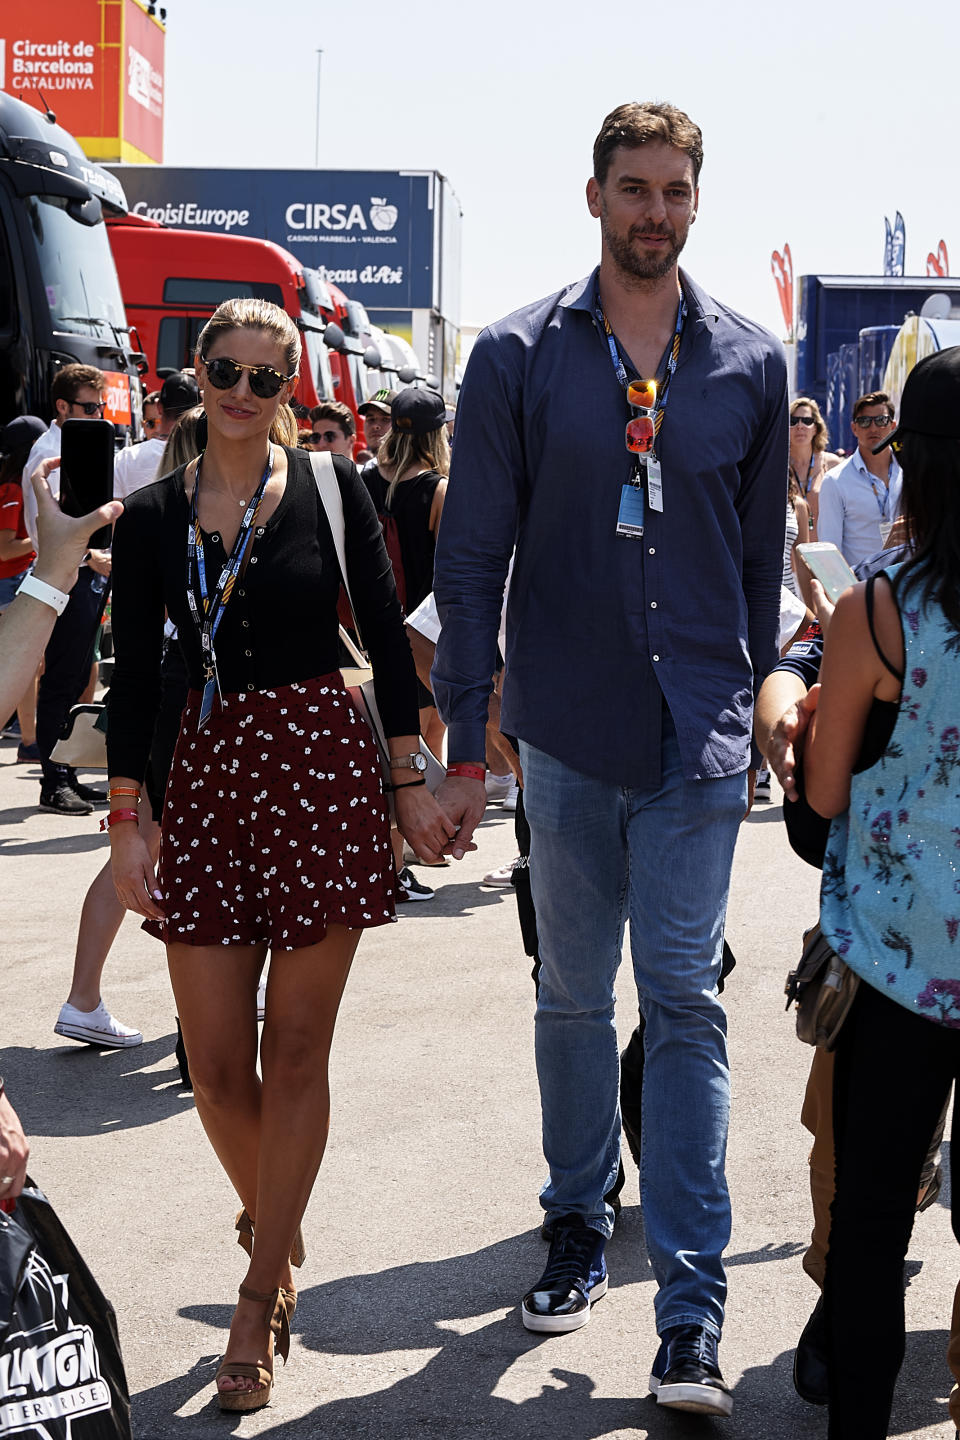 Pau Gasol and his girlfriend Catherine McDonnell during the qualifying of the Gran Premi Monster Energy de Catalunya, Circuit of Catalunya, Montmelo, Spain.On 16 june of 2018. (Photo by Jose Breton/NurPhoto via Getty Images)